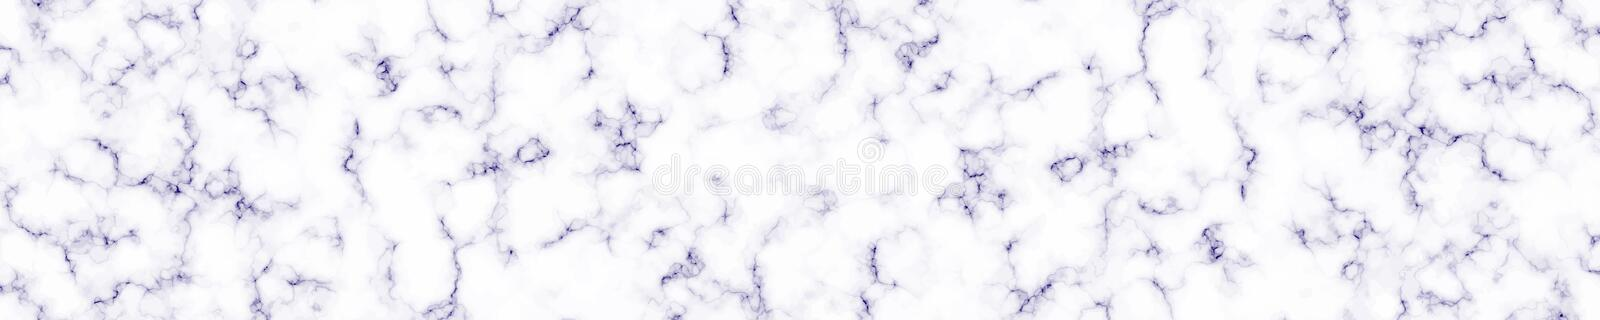 White marble stone trendy texture. Abstract horizontal vector background. royalty free illustration